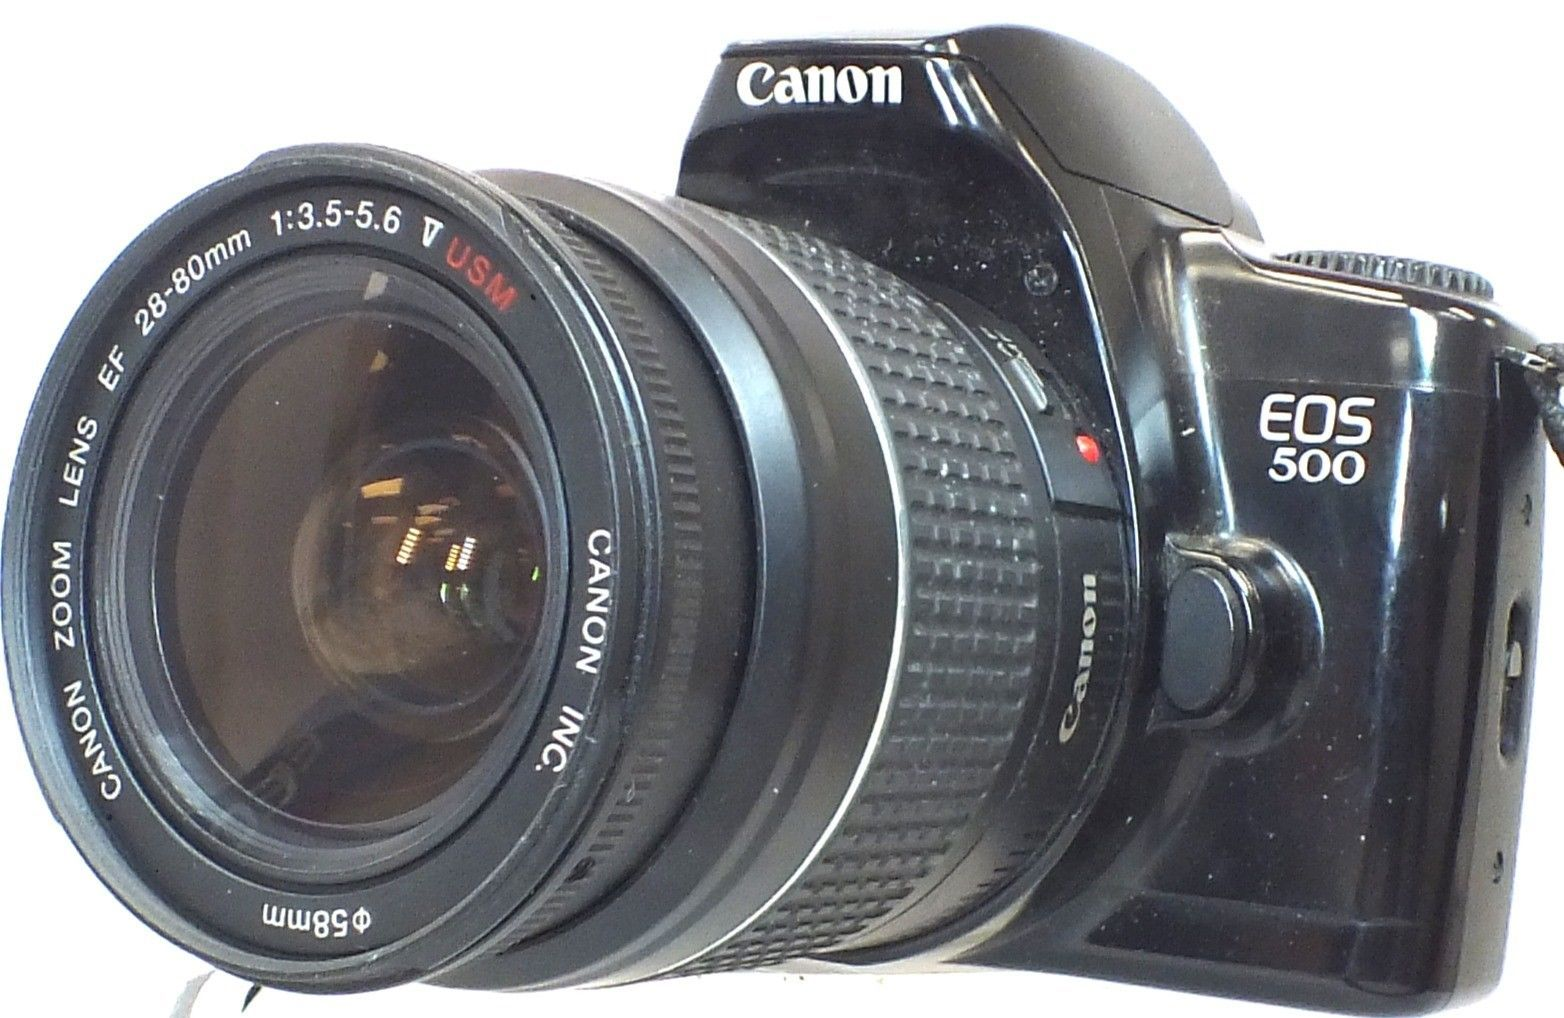 Pin On Photography Camera Equipment For Charity